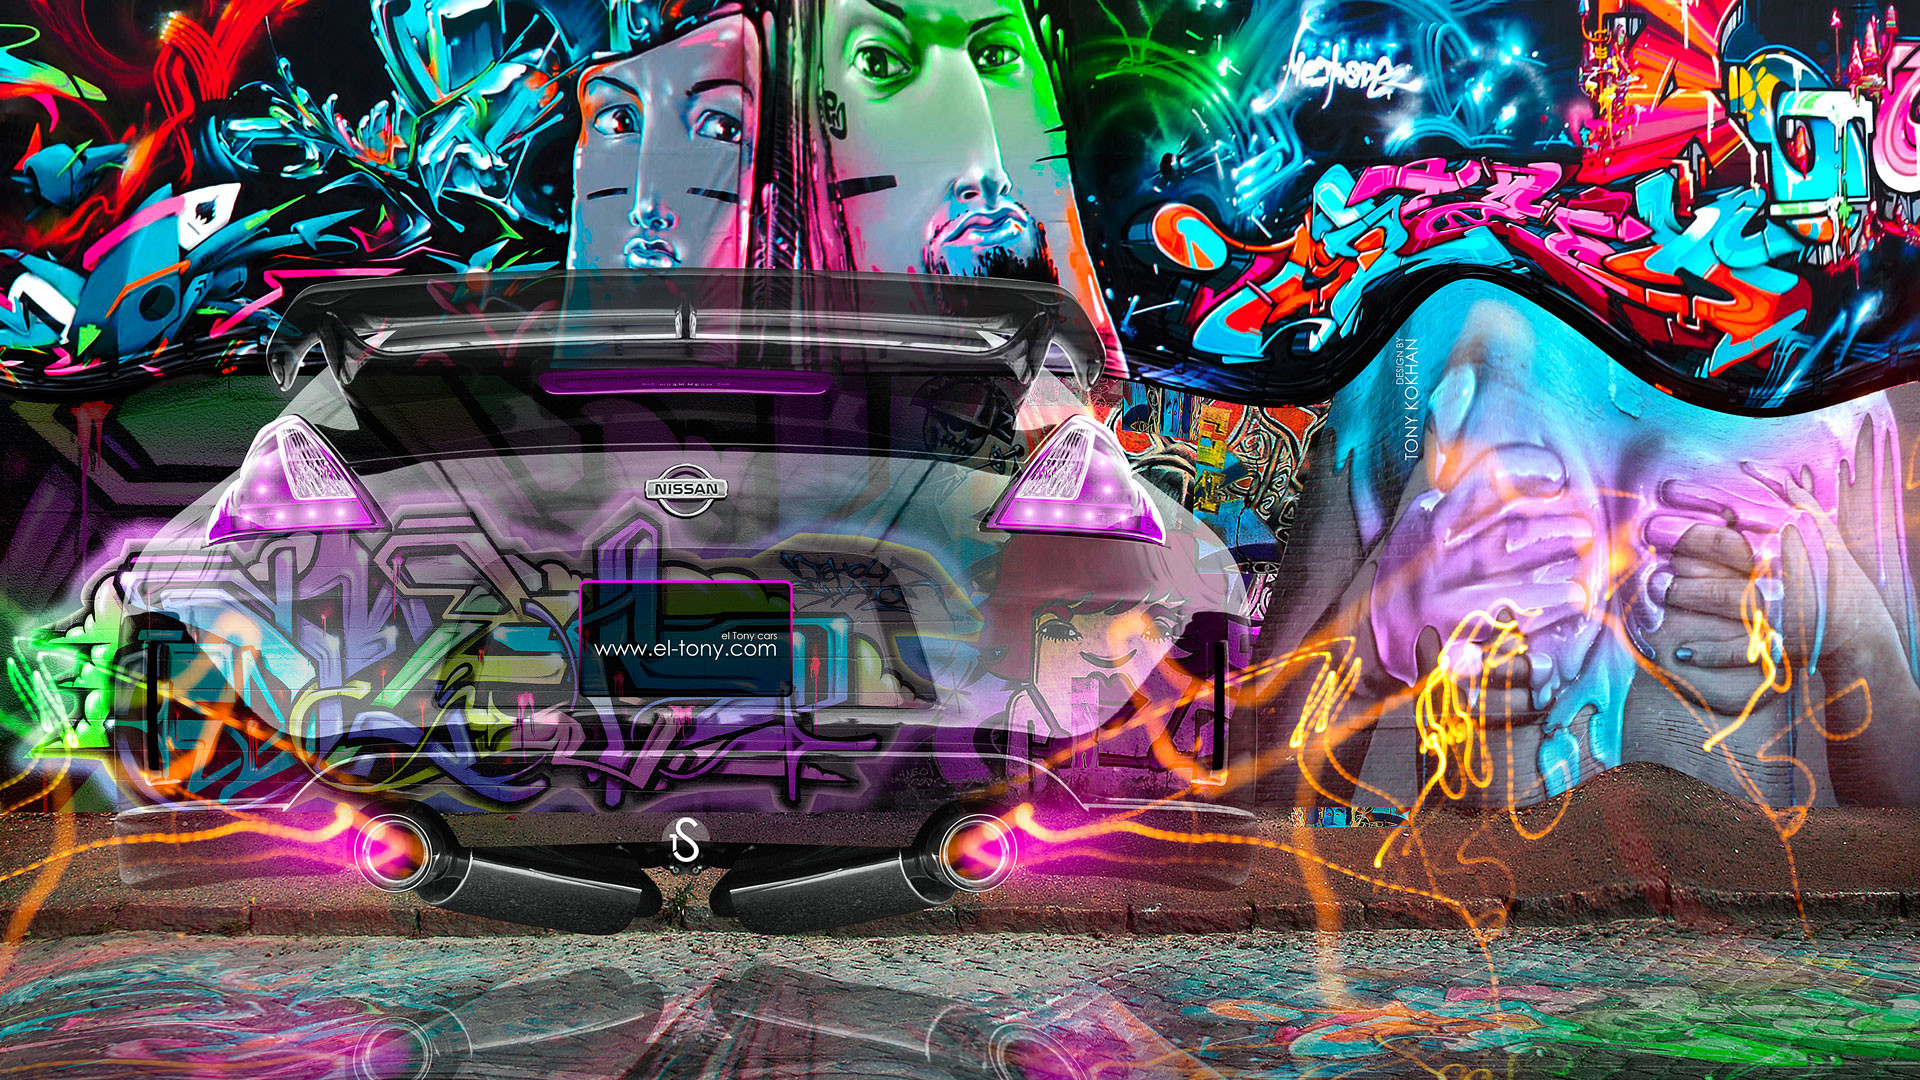 1920x1080 Nissan 370Z JDM City Fantasy Crystal Graffiti Fly Car 2014